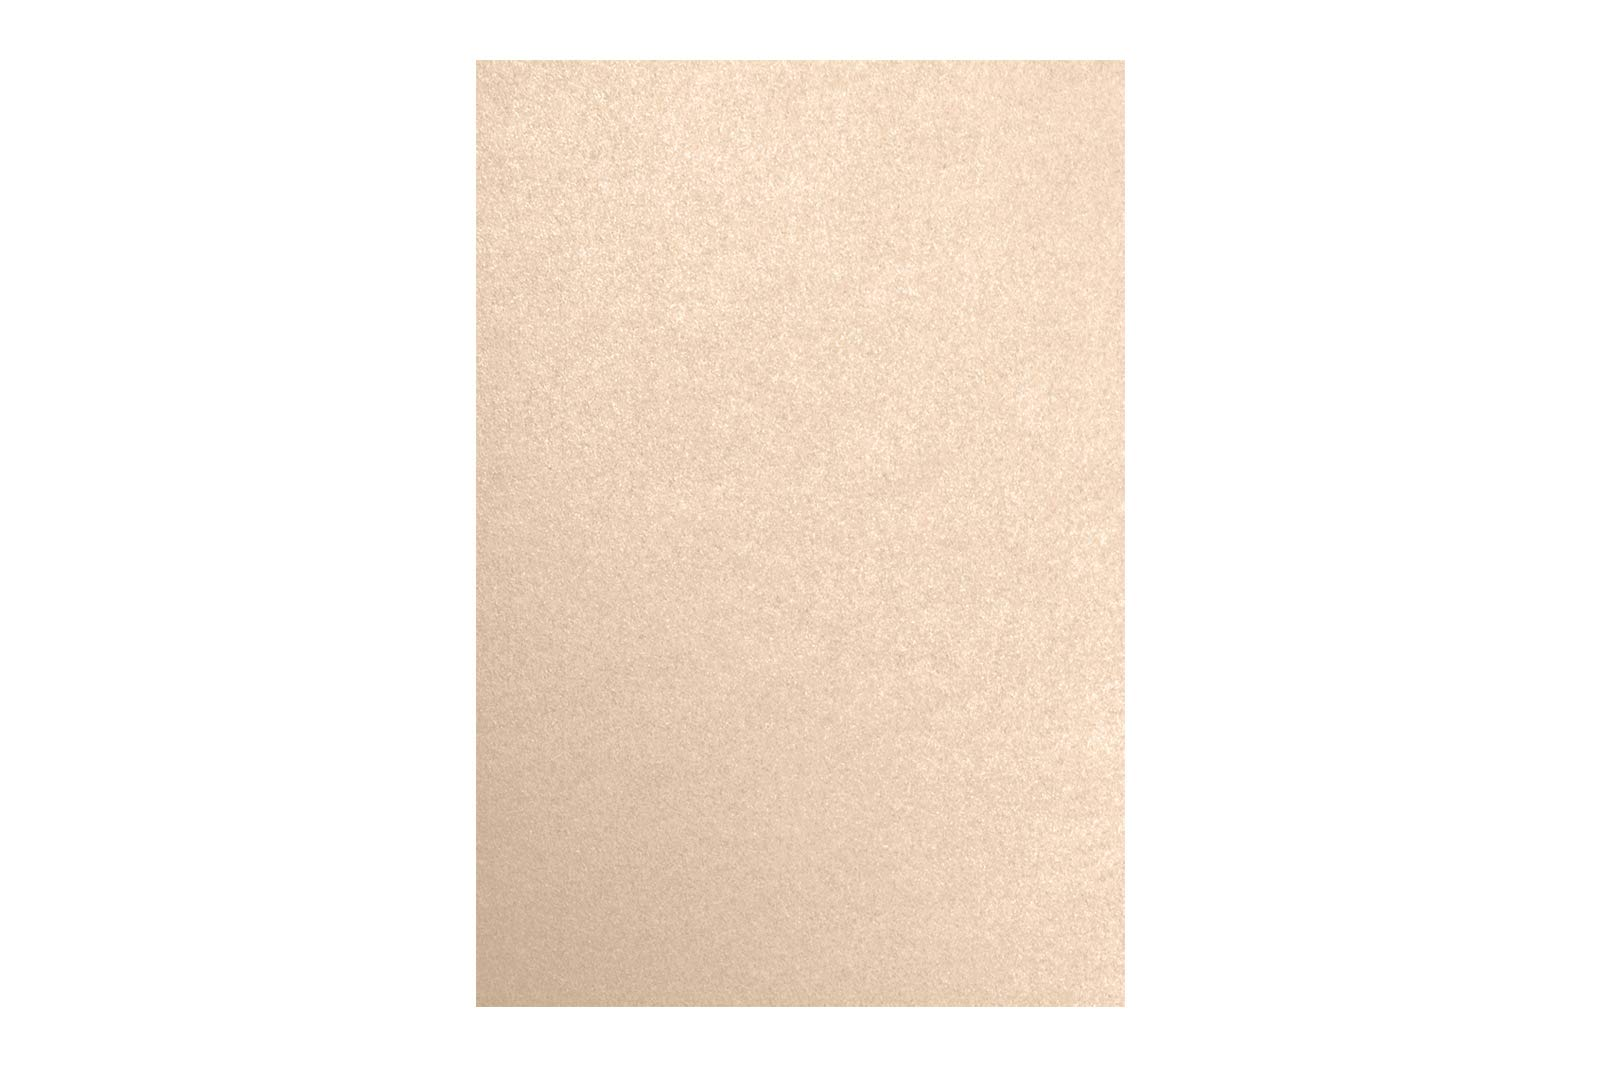 13 x 19 Cardstock - Coral Metallic - Stardream (50 Qty.) | Perfect for Holiday Crafting, Invitations, Scrapbooking, Cards and so much more! |1319-C-M207-50